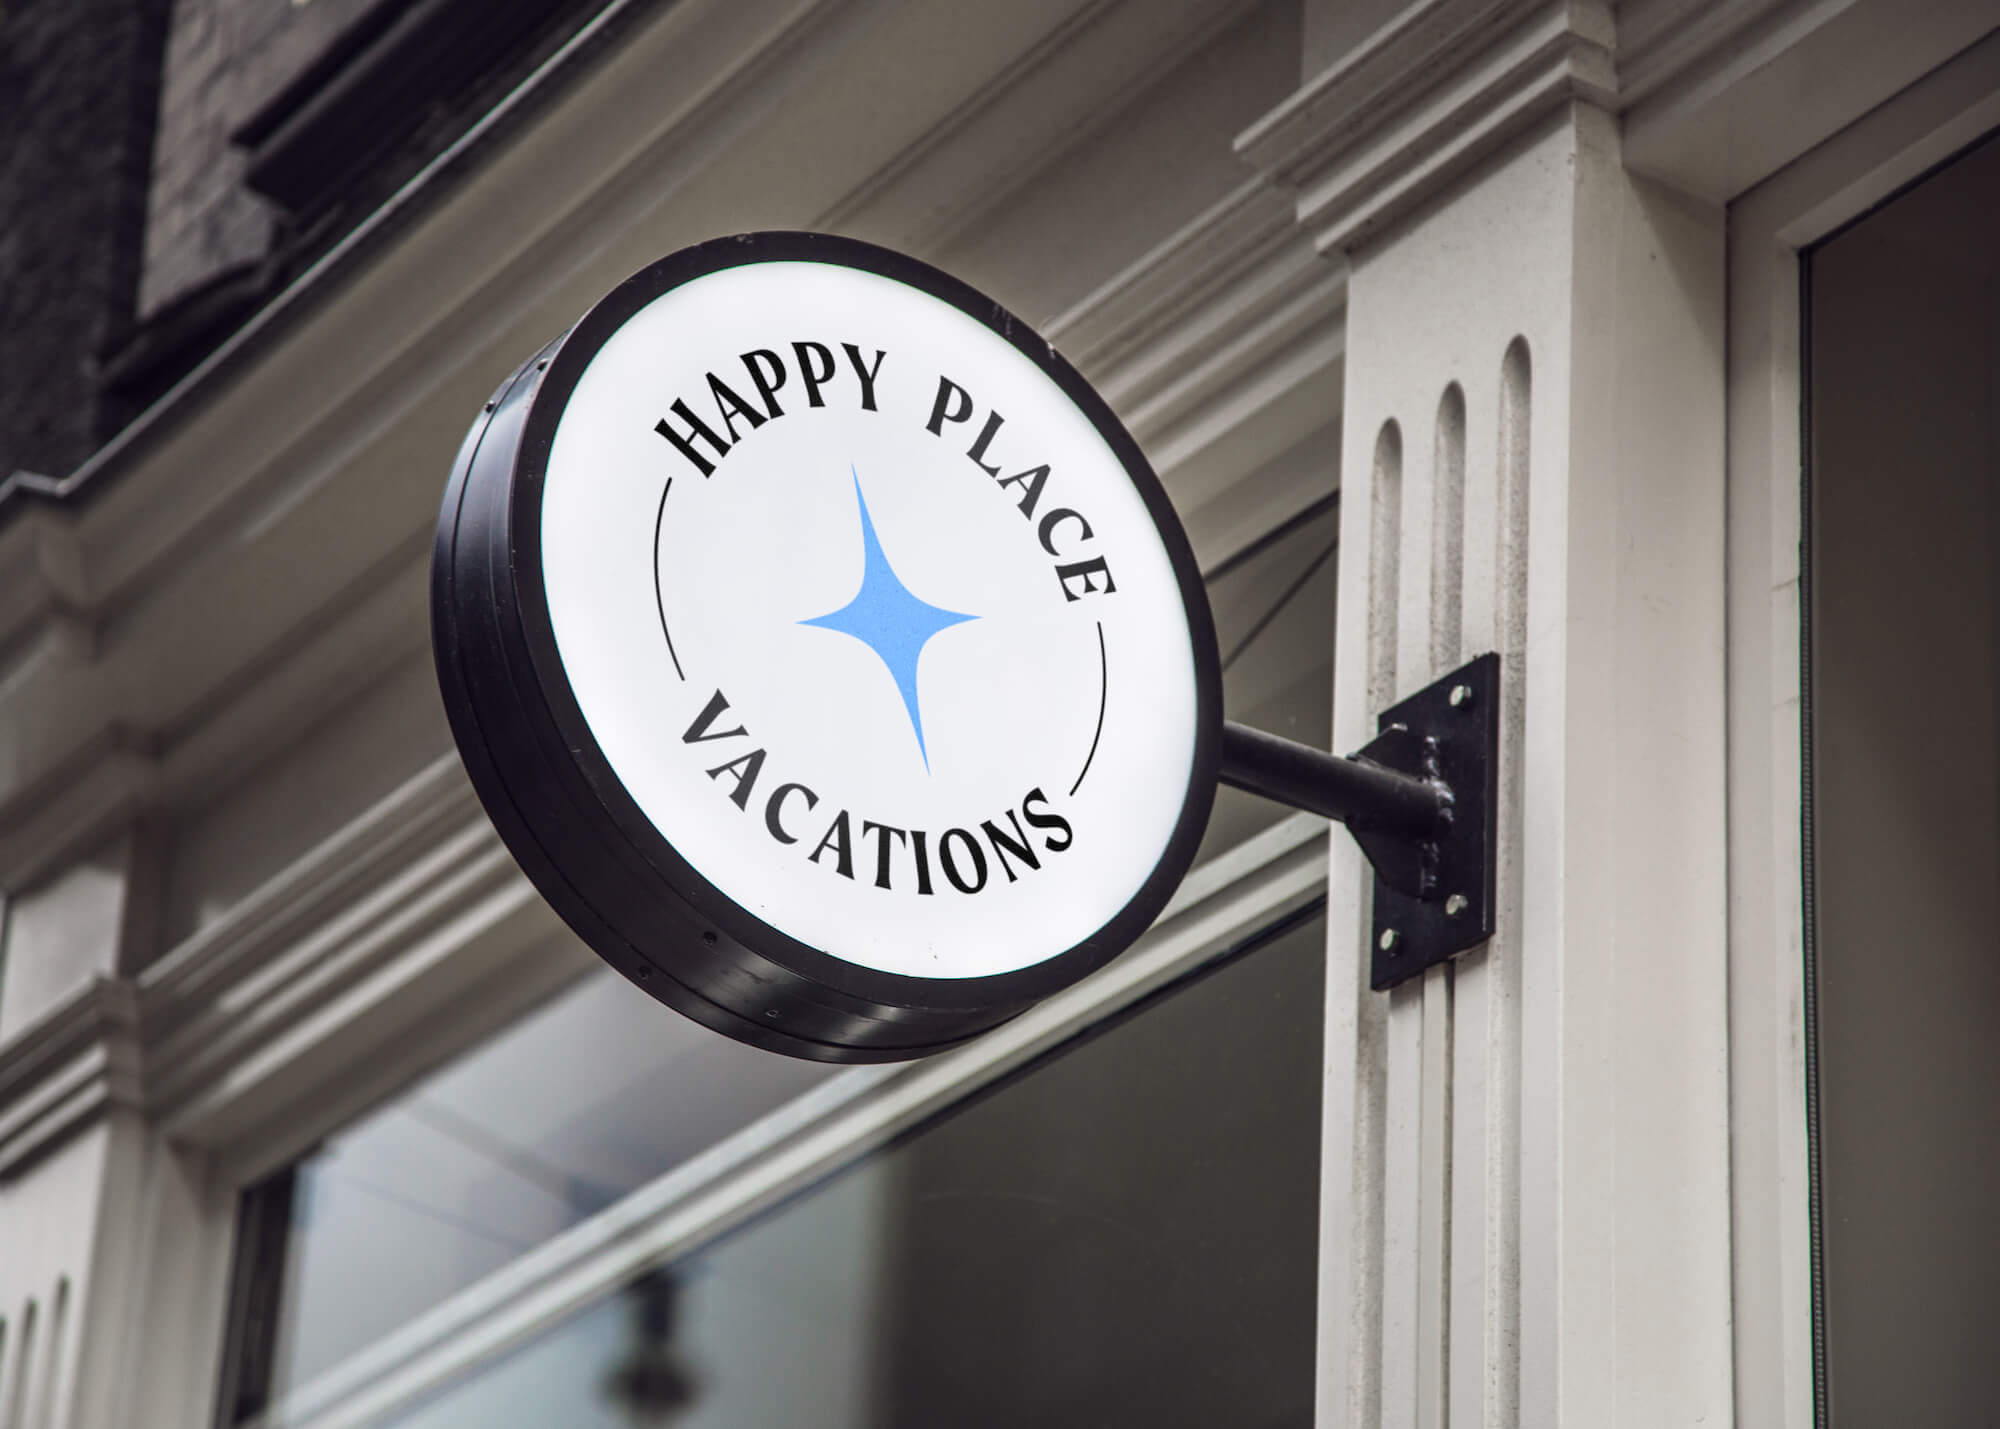 Circular sign holding the Happy Place Vacations logo